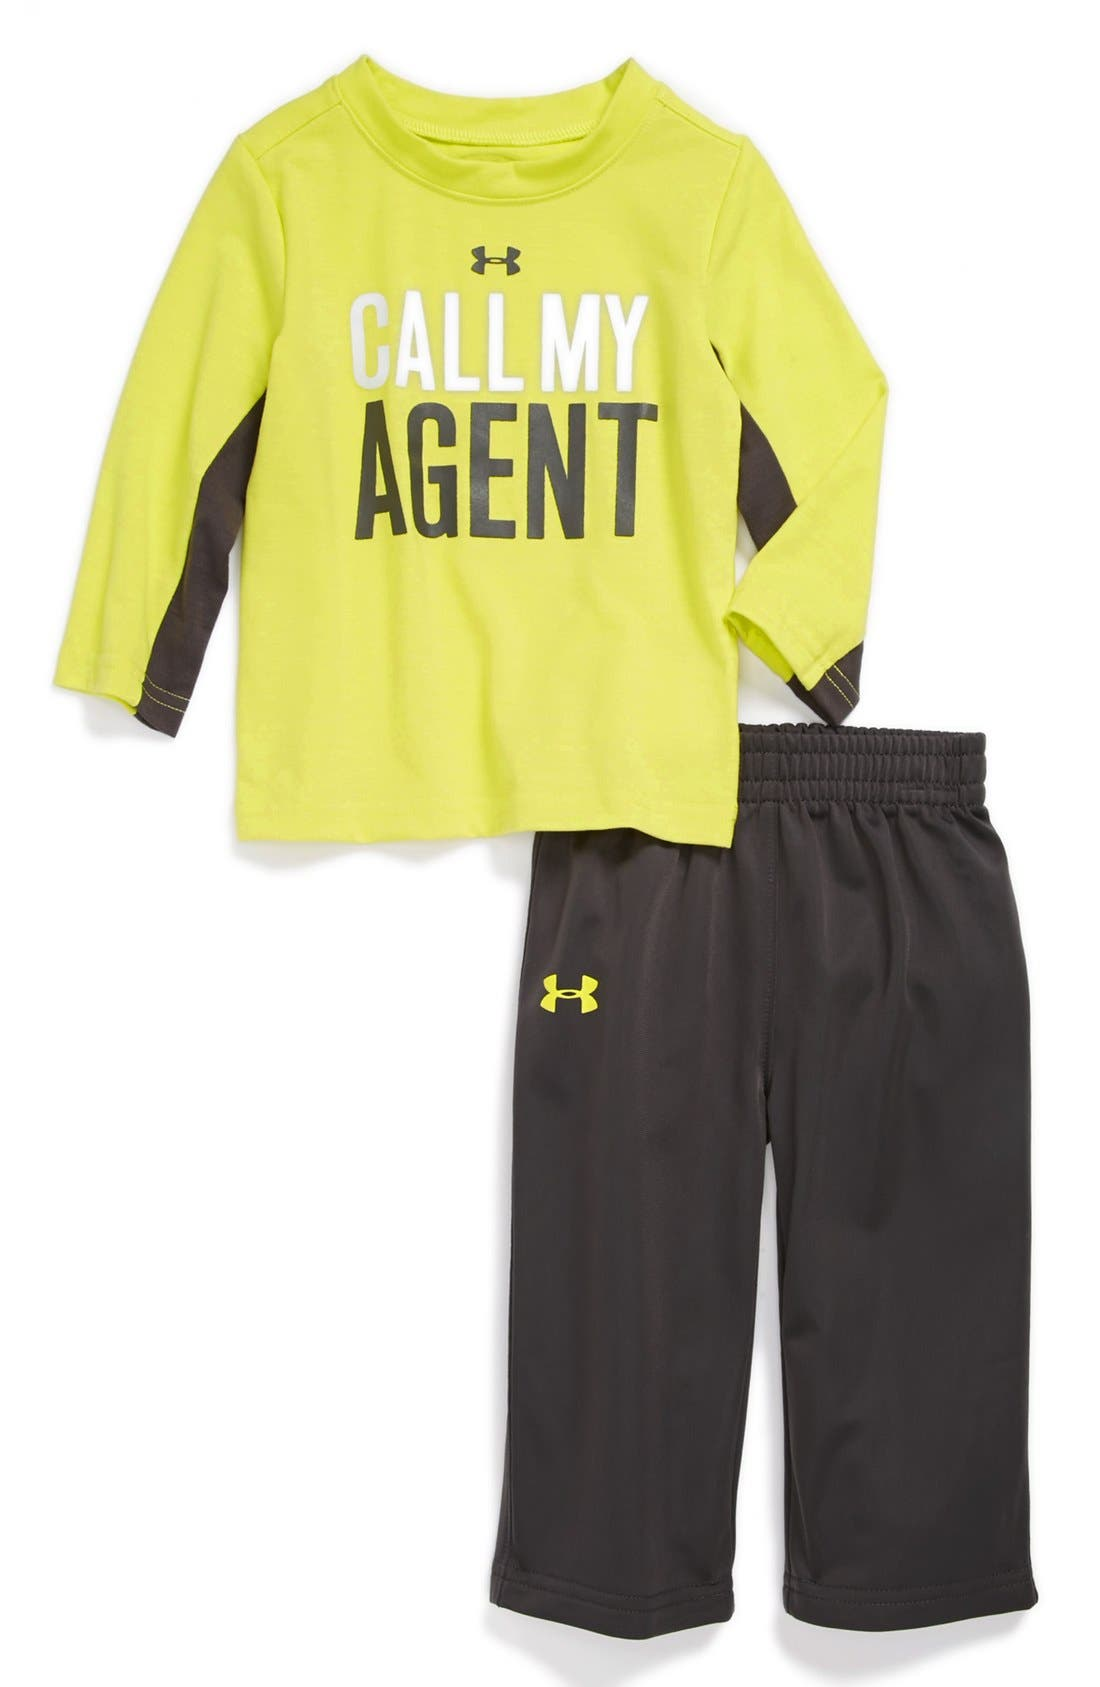 Main Image - Under Armour 'Call My Agent' T-Shirt & Pants (Baby Boys)